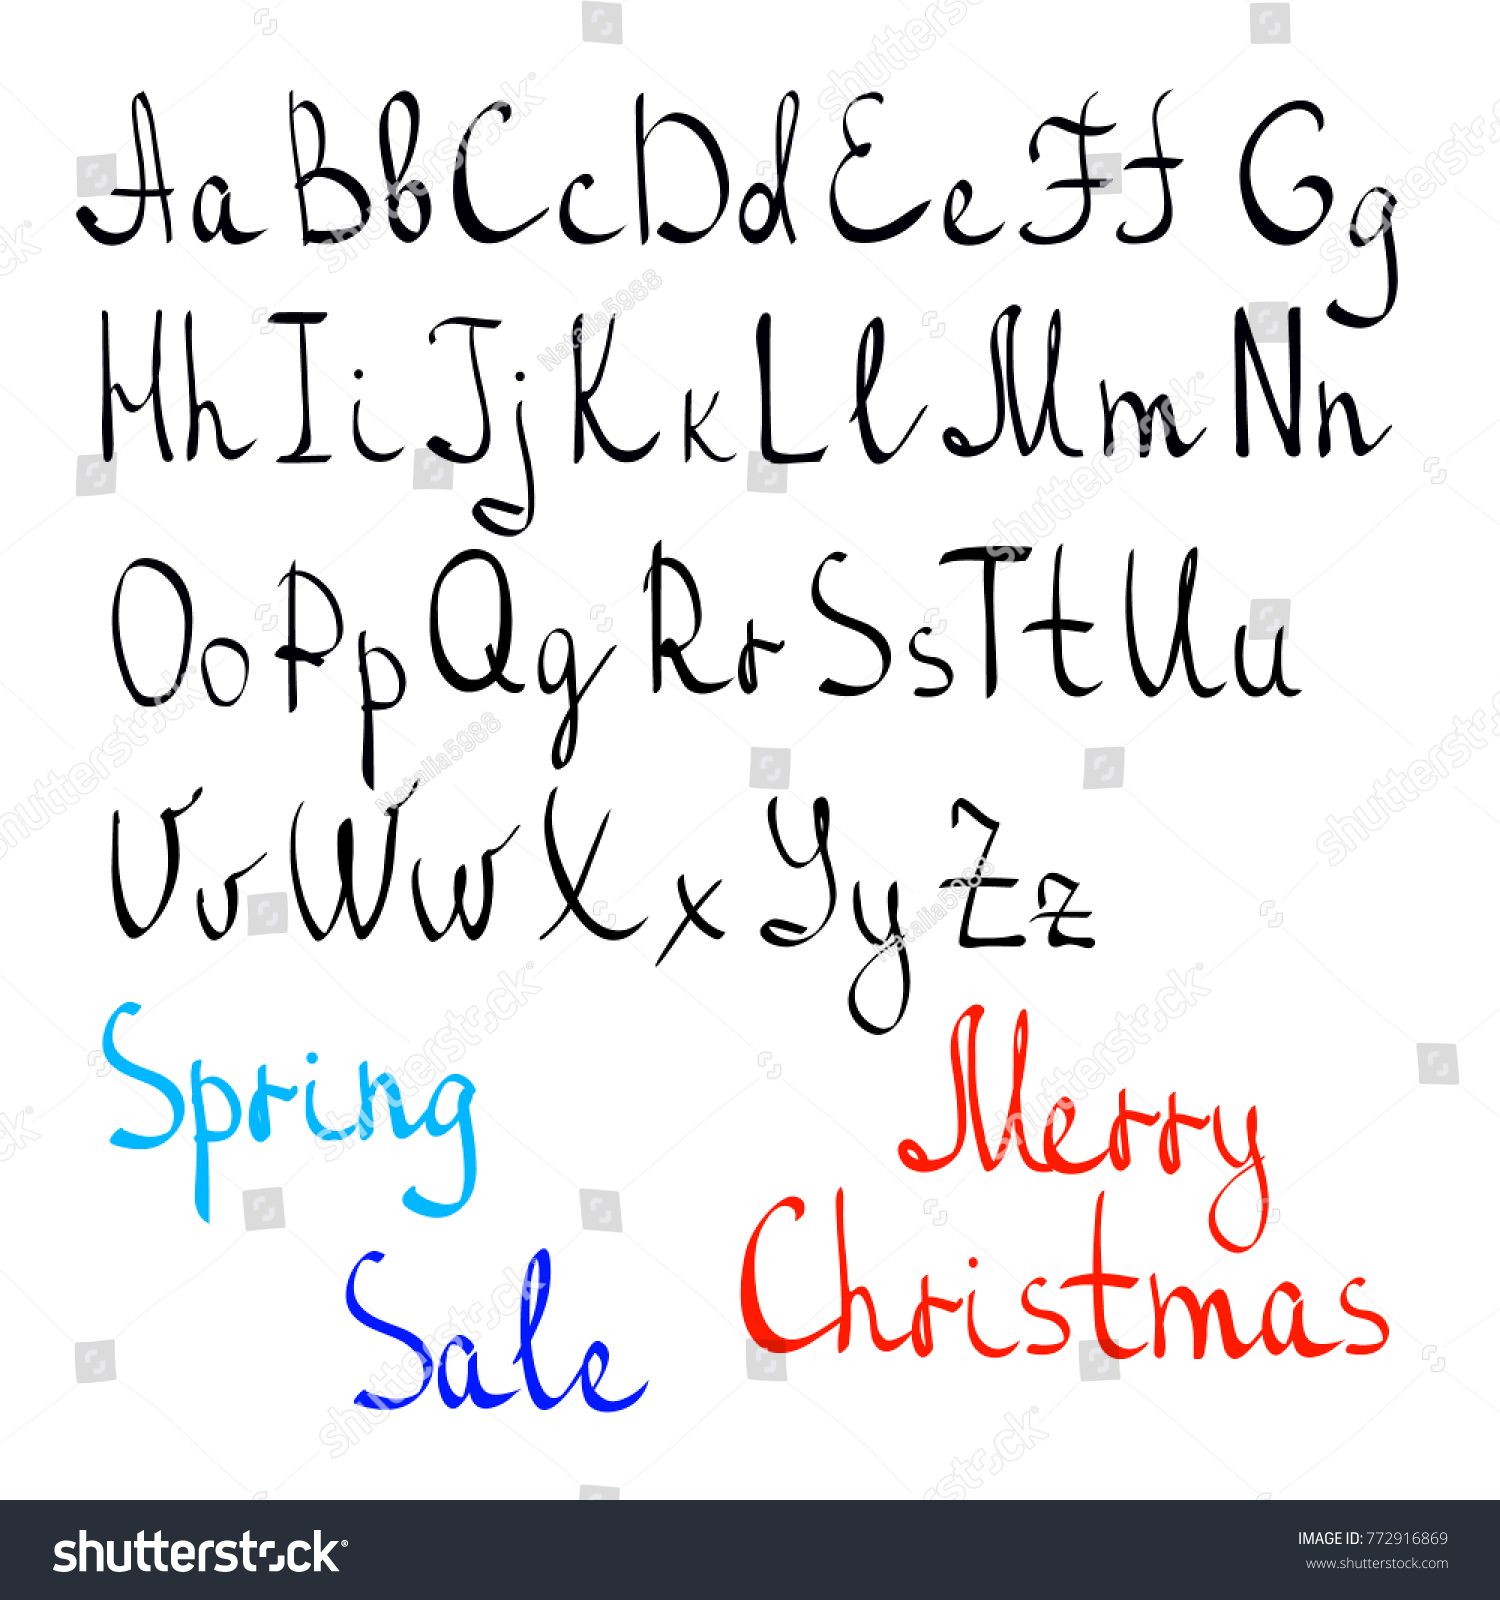 Written alphabet by hand english letters stock vector 772916869 written alphabet by hand english letters casually written letters words spring sale spiritdancerdesigns Choice Image